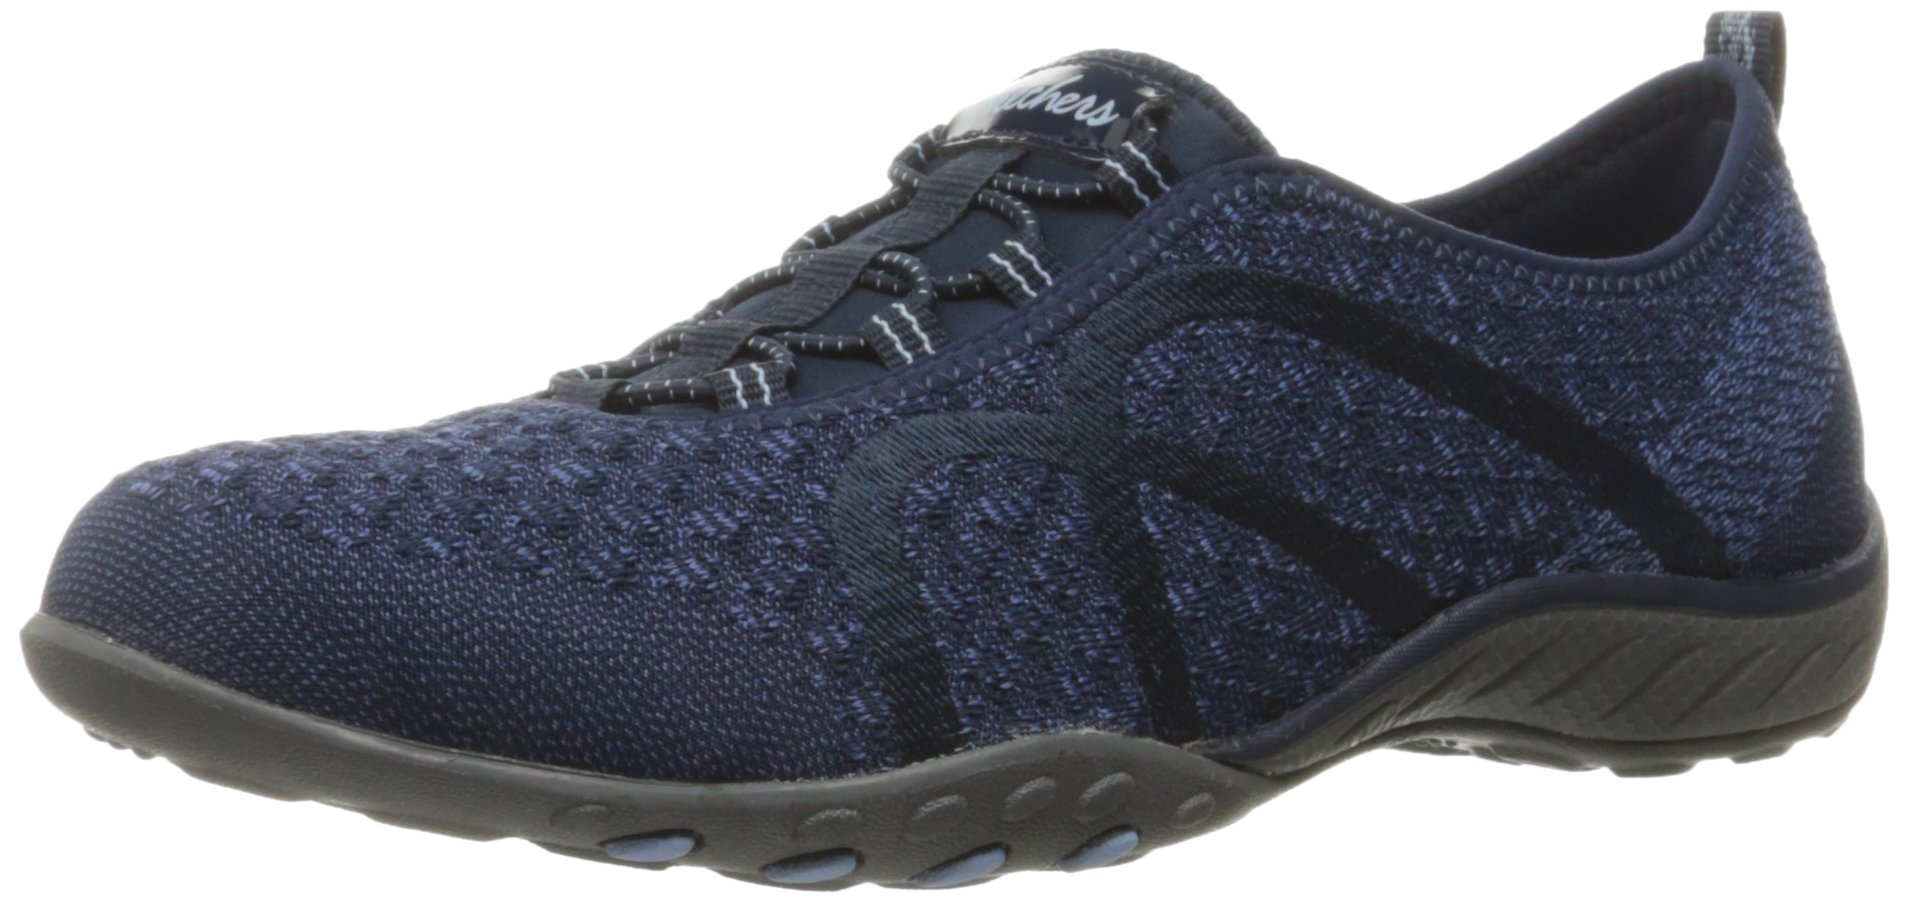 ویکالا · خرید  اصل اورجینال · خرید از آمازون · Skechers Sport Women's Breathe Easy Fortune Fashion Sneaker,Navy Knit,9 M US wekala · ویکالا